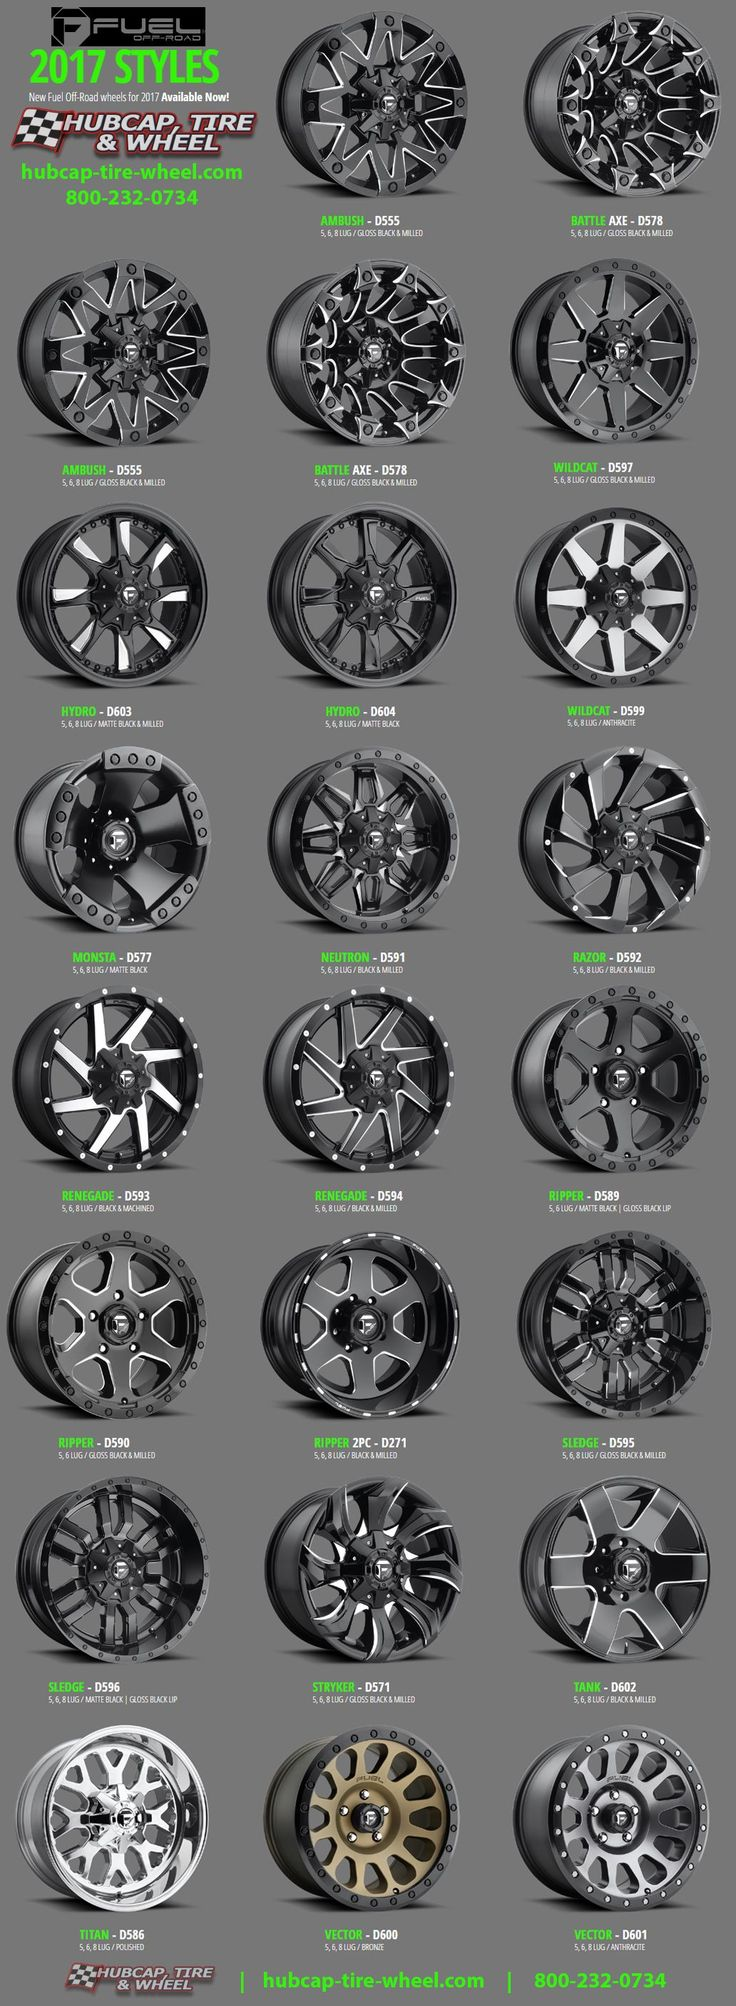 #offroad #wheels #trucks #jeeps #fuel #rims